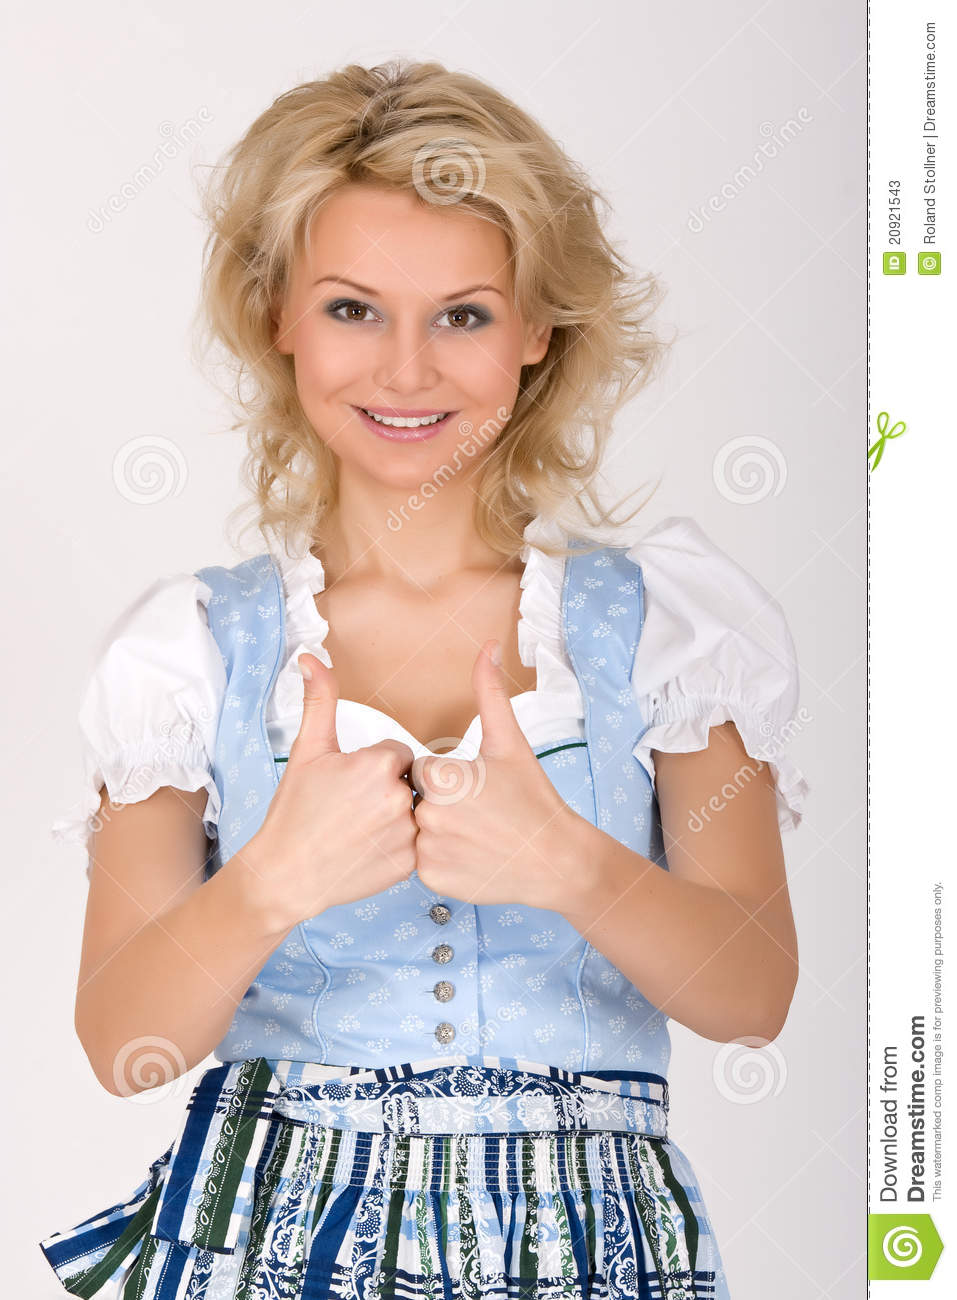 bavarian dirndl dress blonde stock image image of finger human 20921543